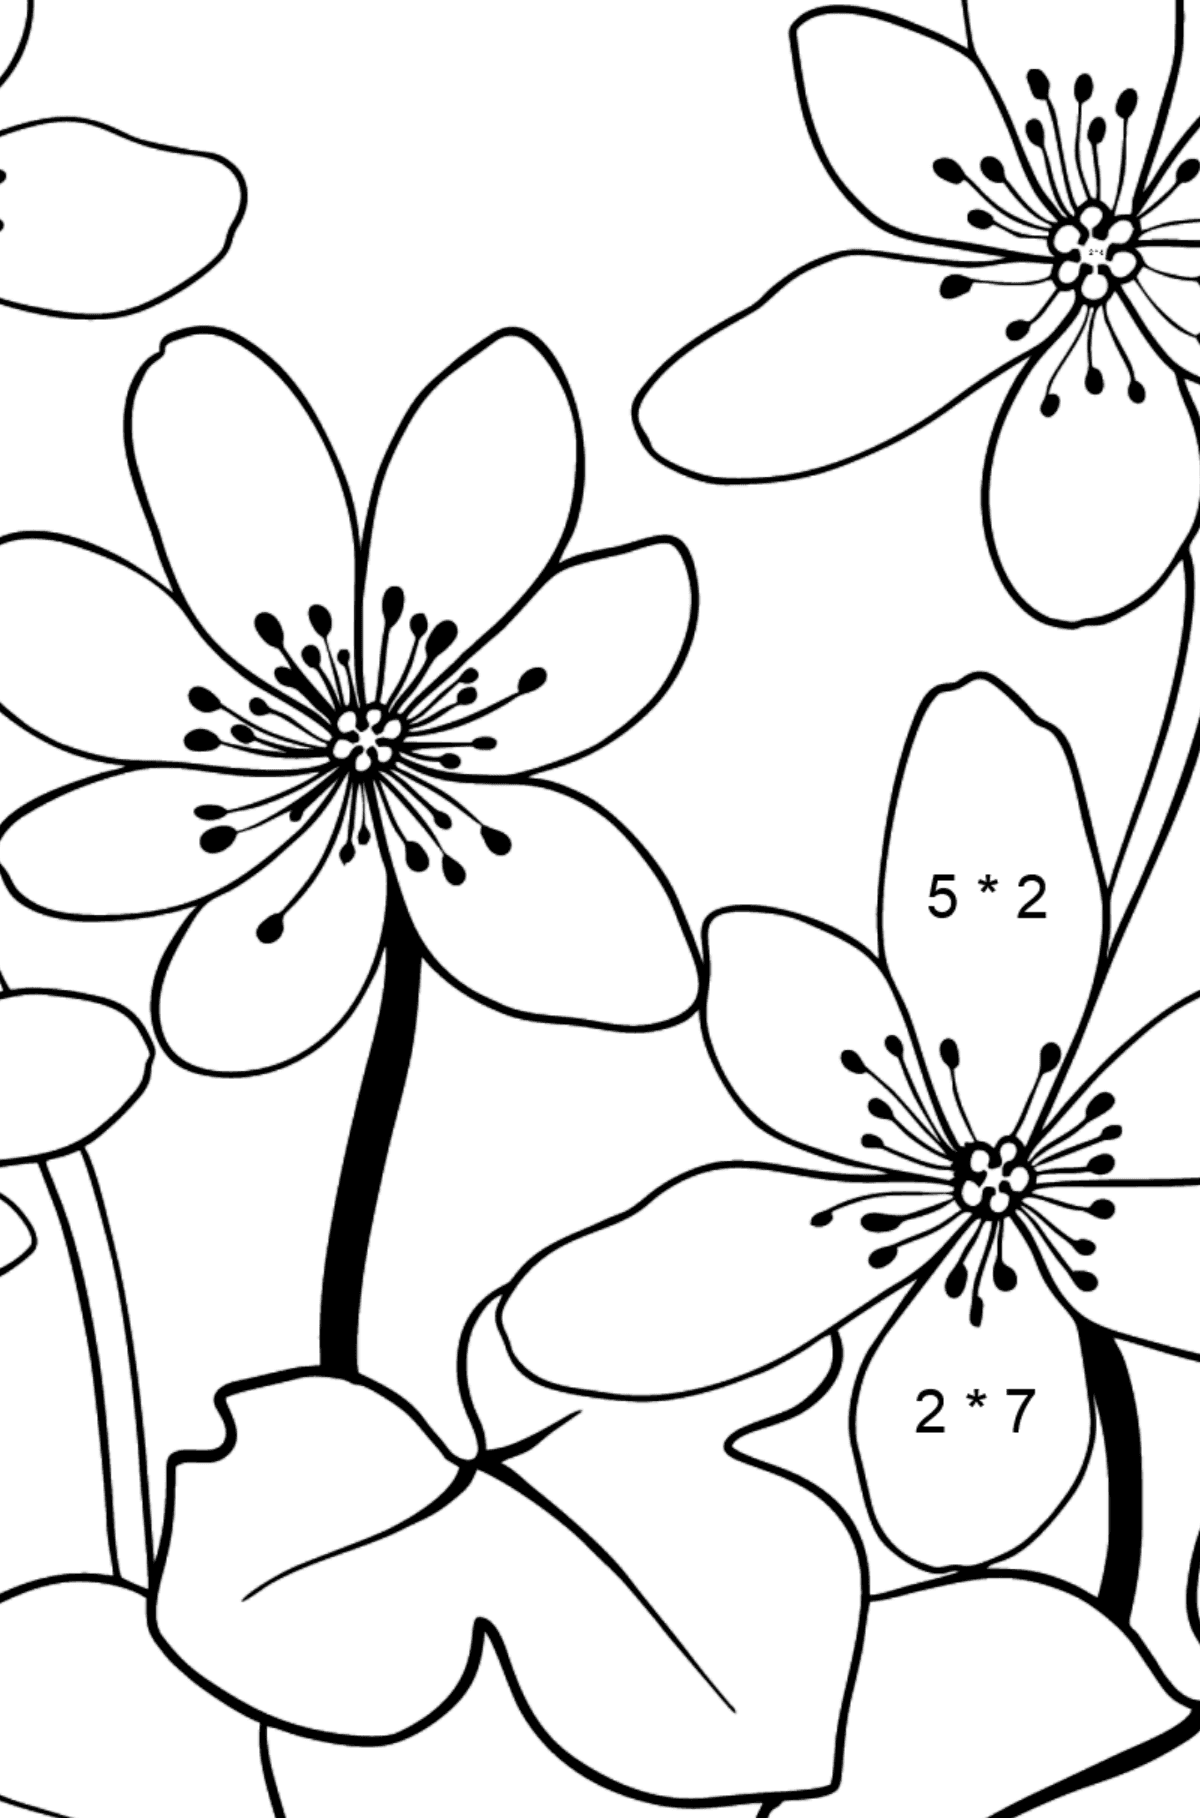 Flower Coloring Page - A Yellow and Orange Hepatica - Math Coloring - Multiplication for Kids